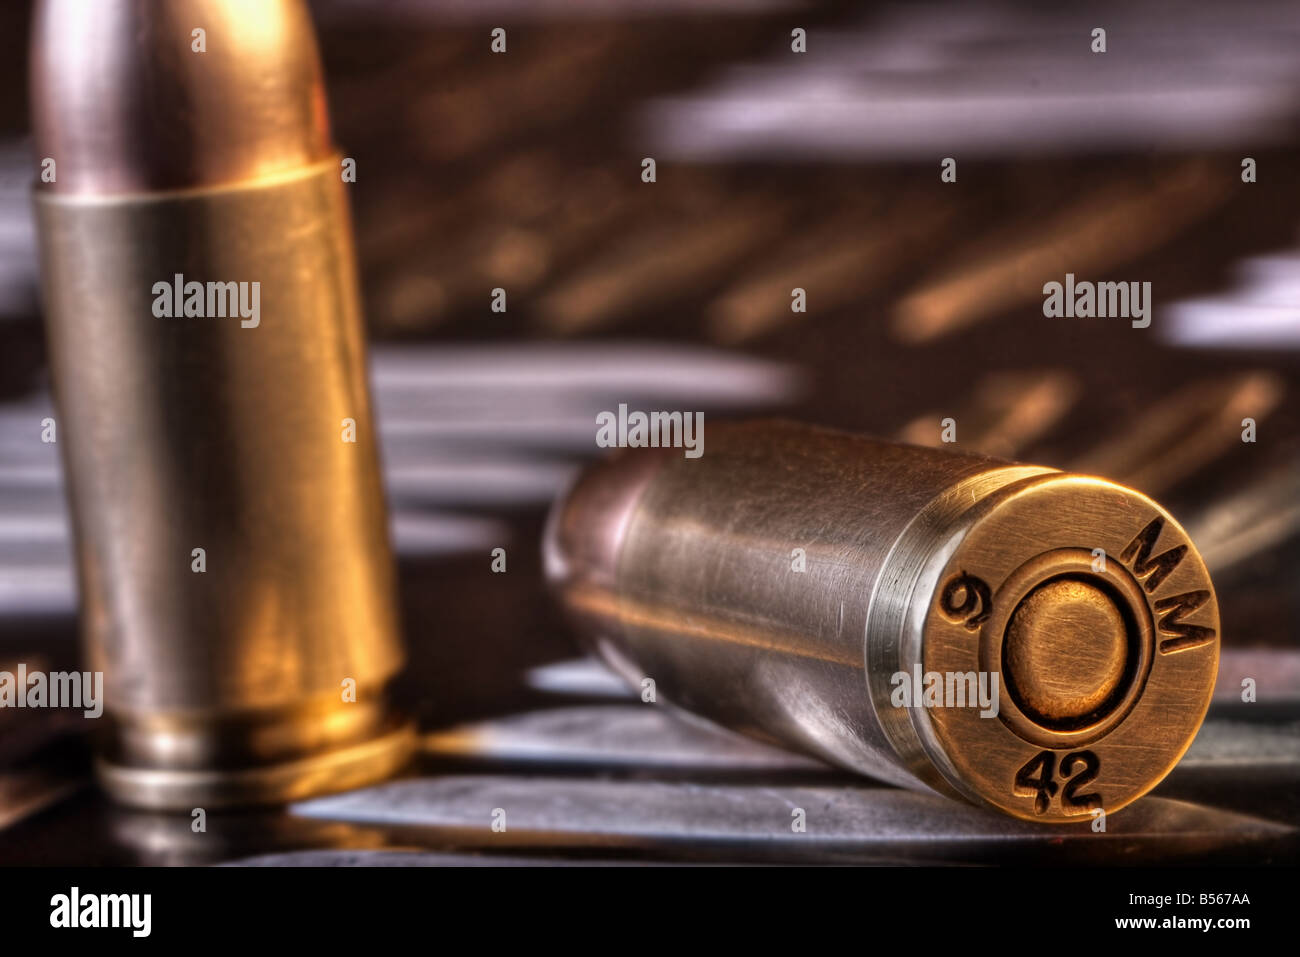 9mm bullets - Stock Image